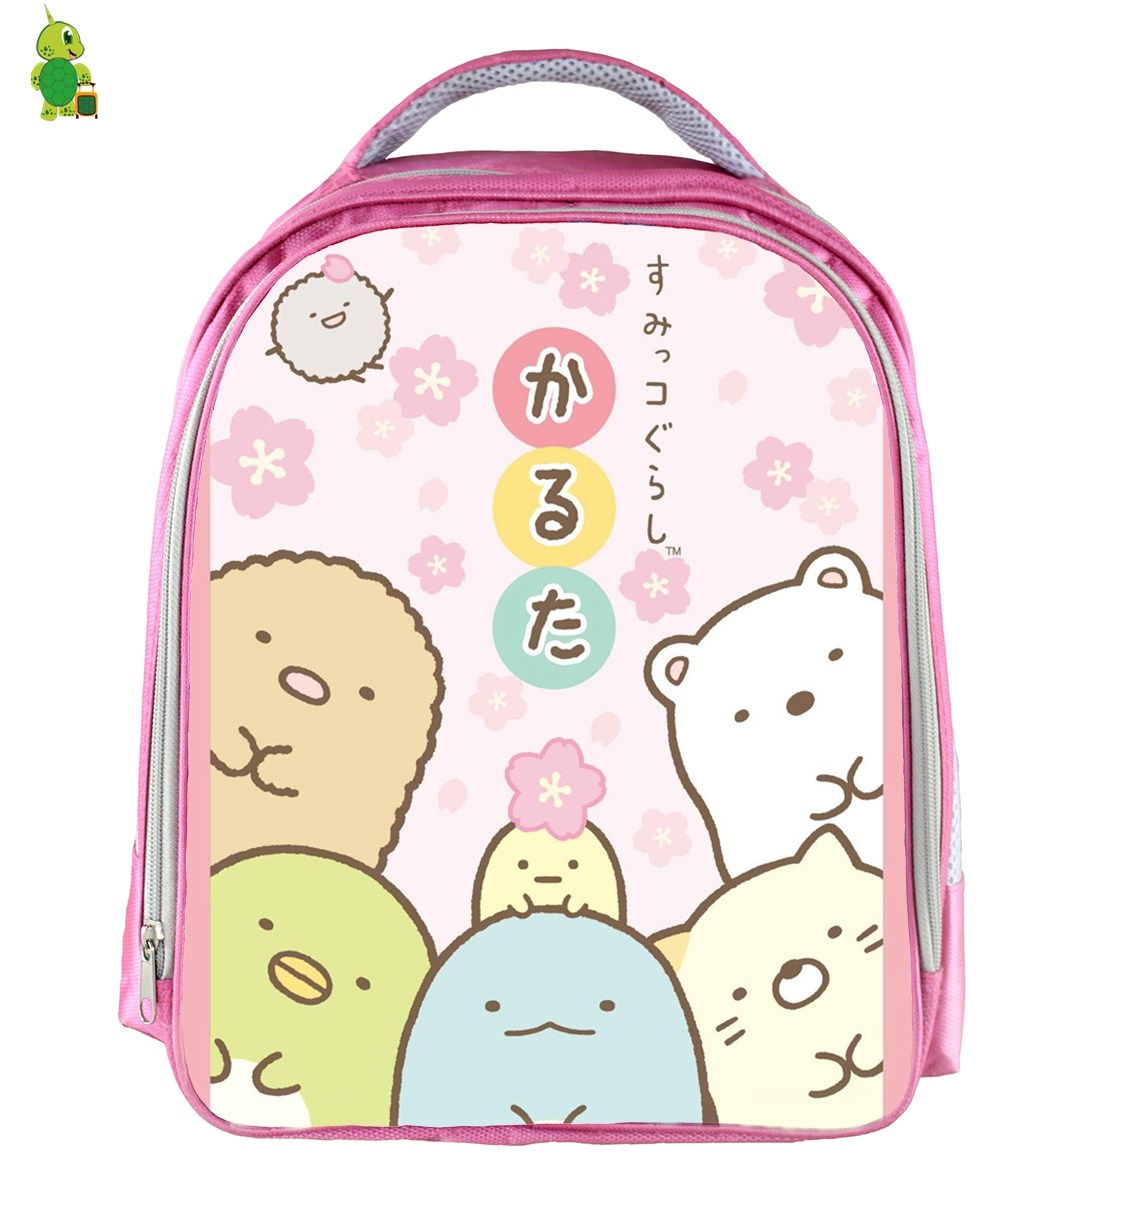 Funny Sumikko Gurashi Small Backpack Cartoon School Bags For Girls Kids Toddler Bags Waterproof Travel Shoulder Bags